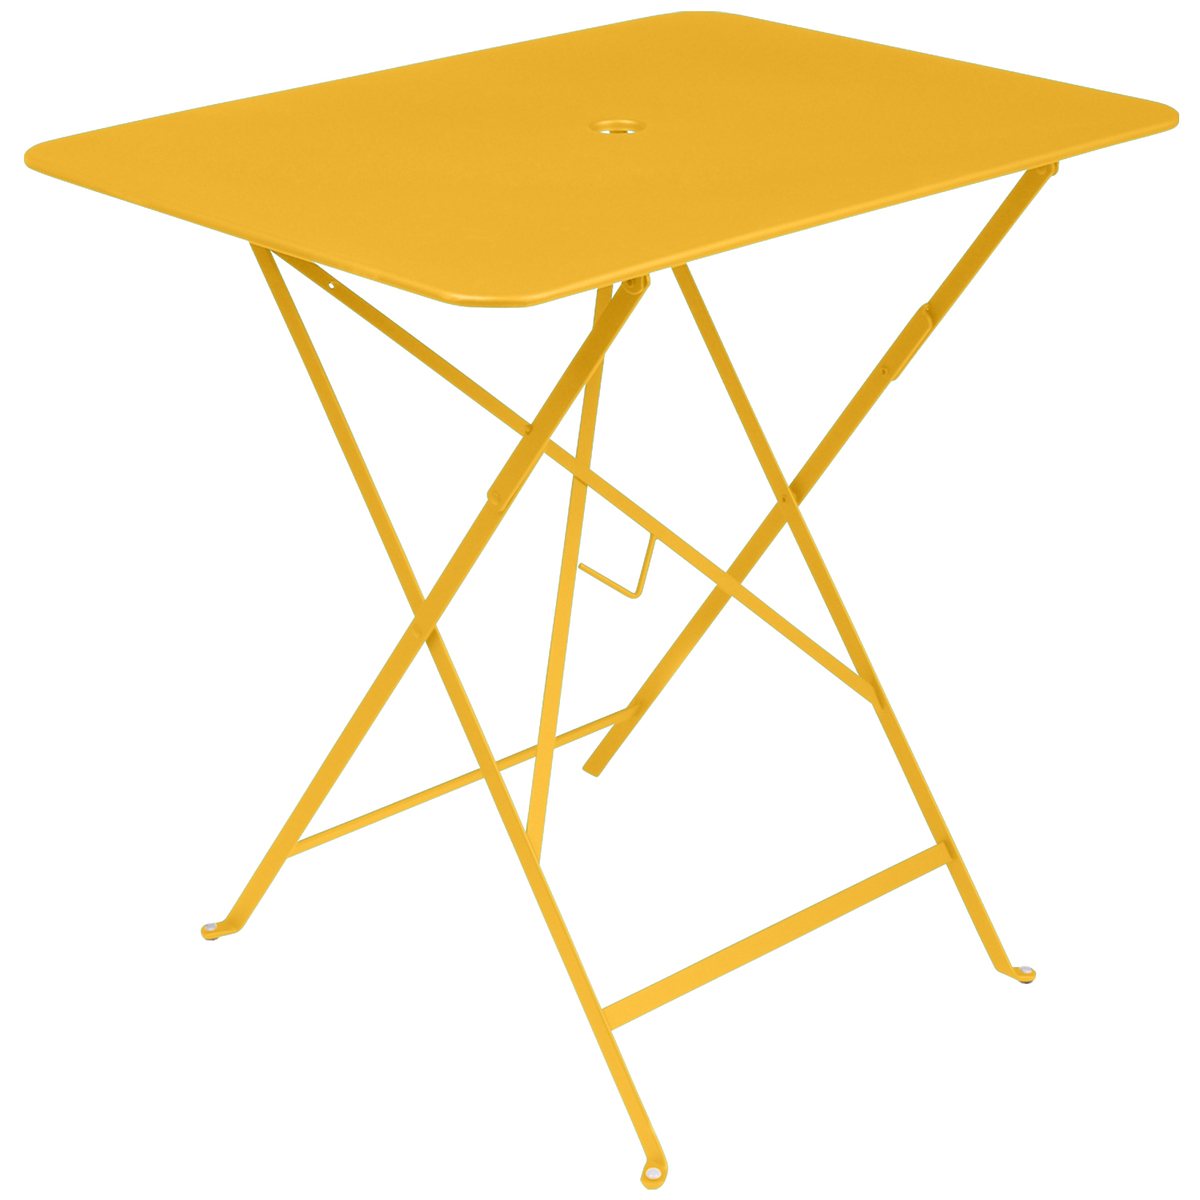 Fermob Bistro table 77 x 57 cm, honey from Fermob